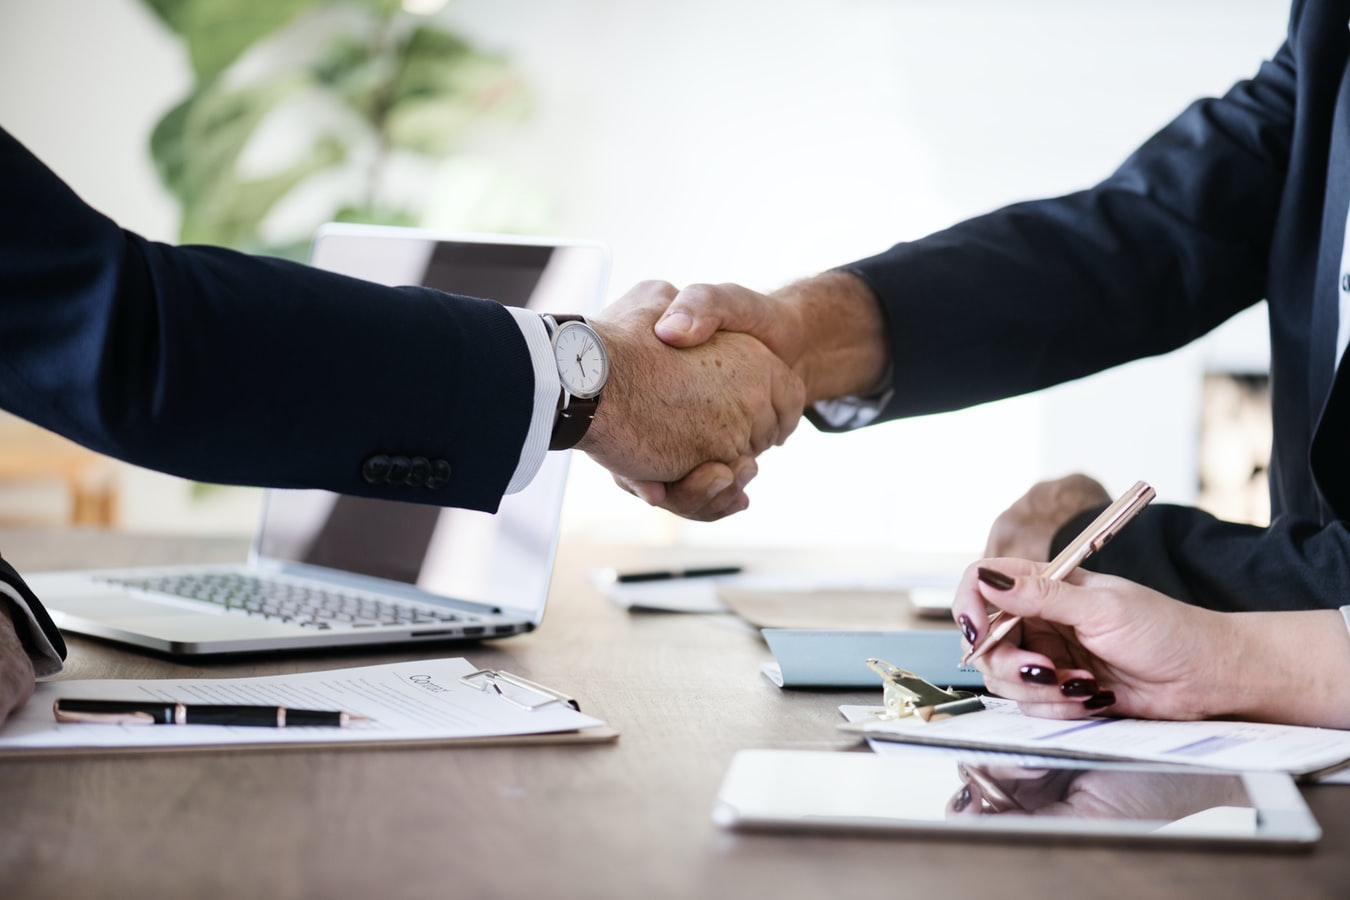 Two men shaking hands during meeting